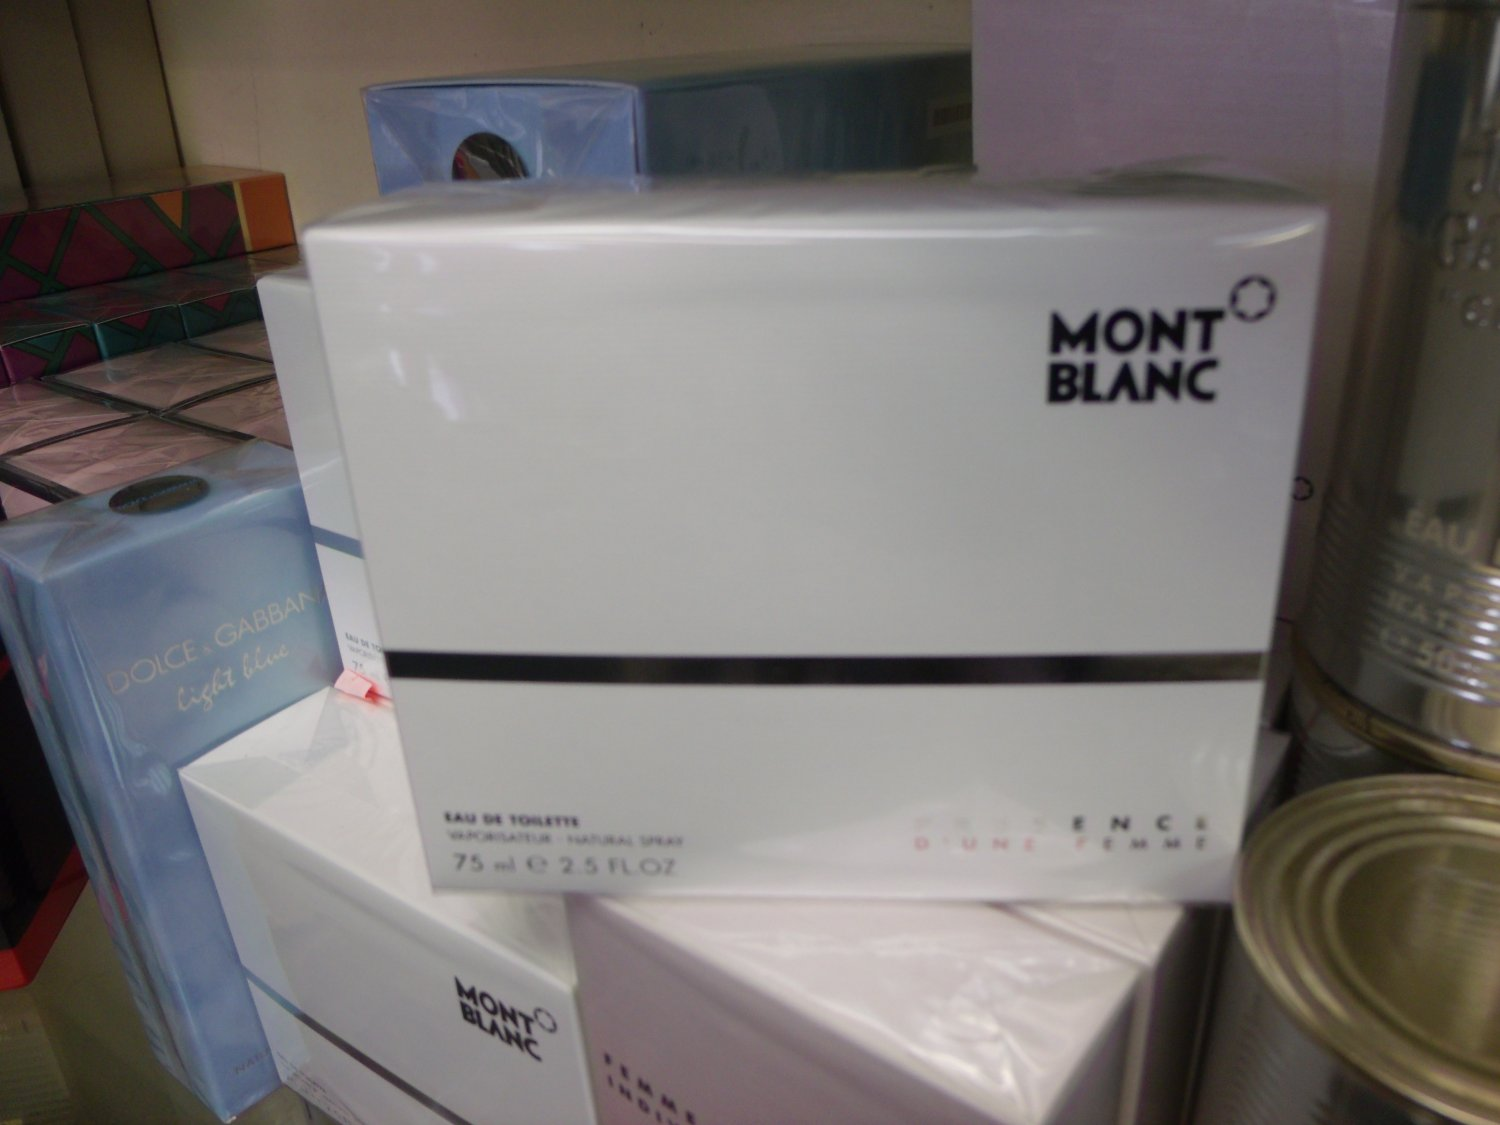 Mont Blanc Presence EDT 2.5 fl oz 75 ml for Women Retail $ 75.00 Our Price $ 54.99 Save 32%